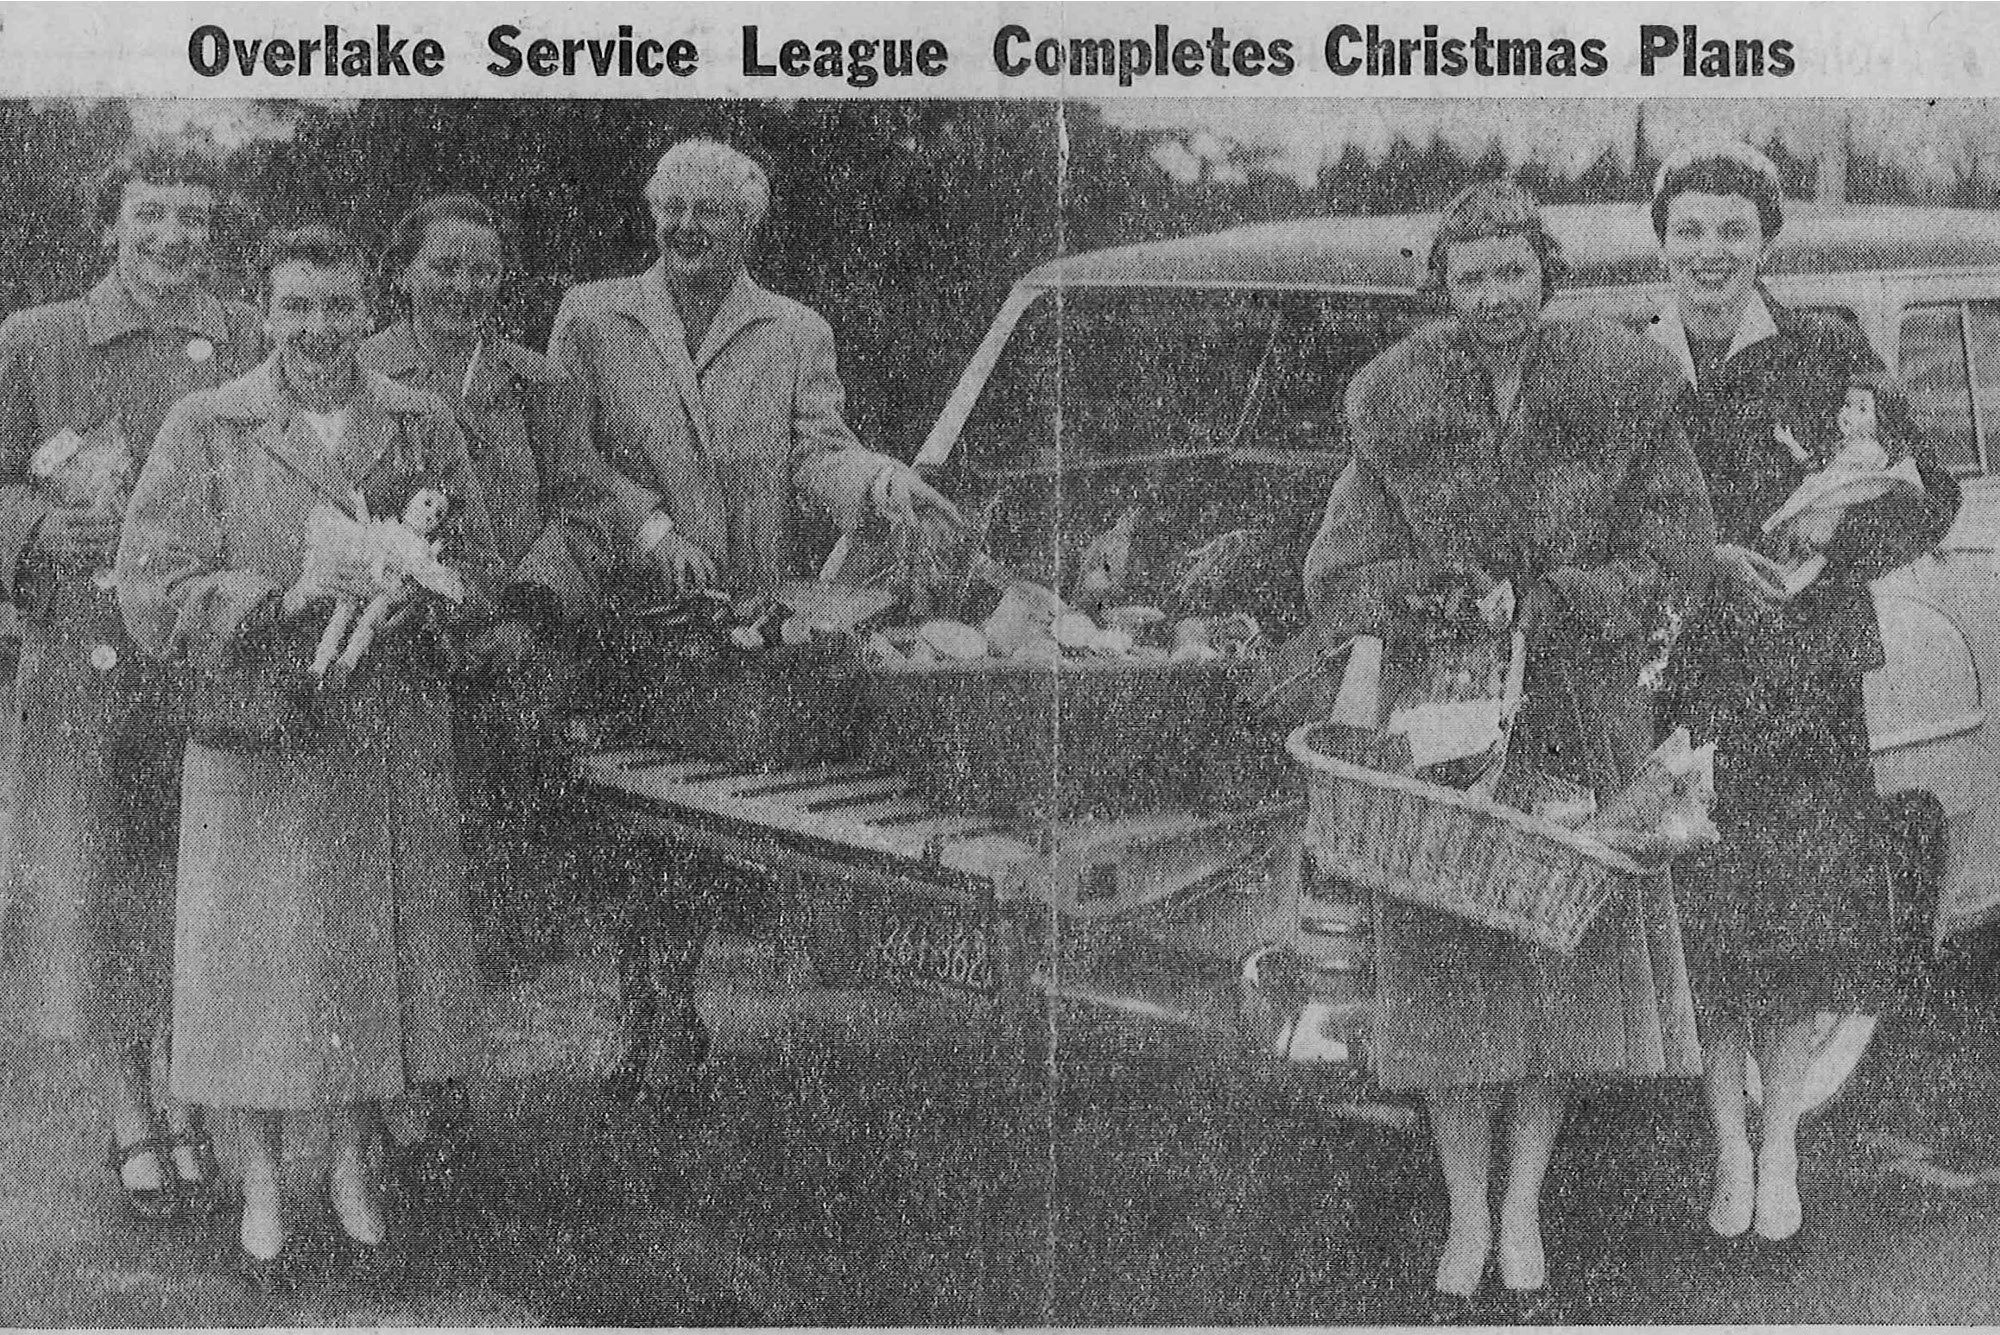 Holiday Adopt-A-Family in 1954